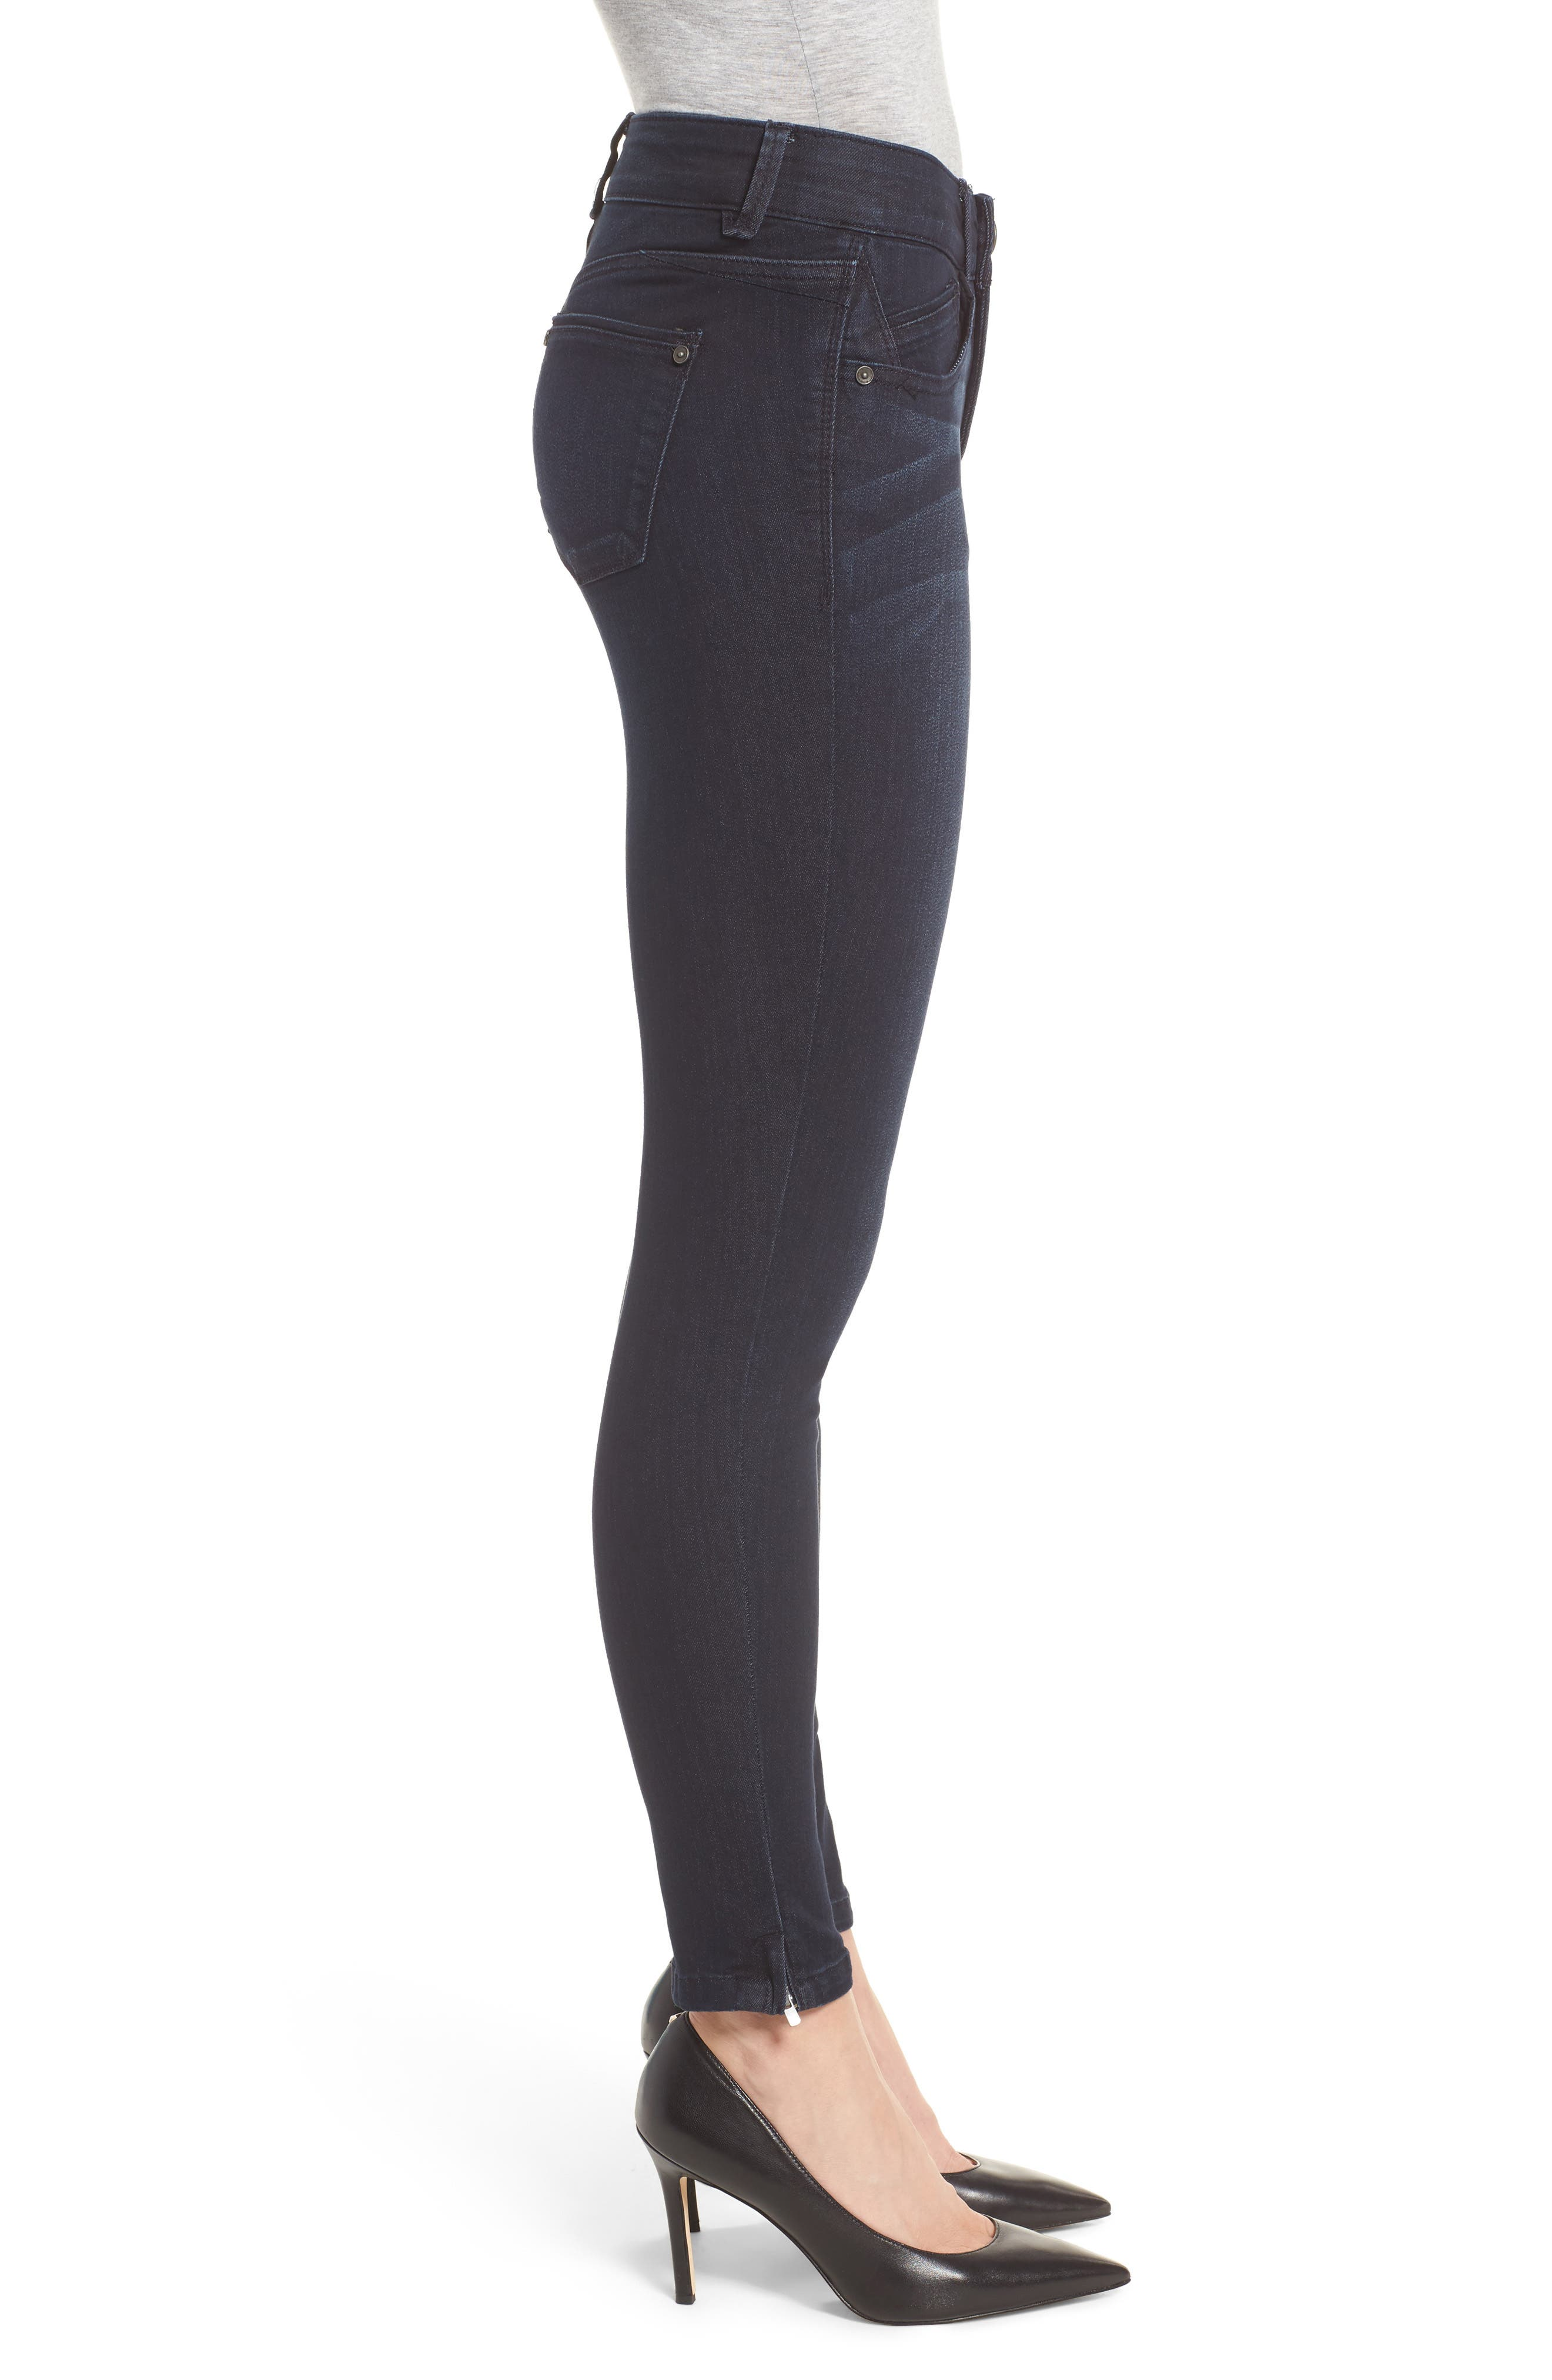 Ab-solution Ankle Zip Skinny Jeans,                             Alternate thumbnail 3, color,                             410